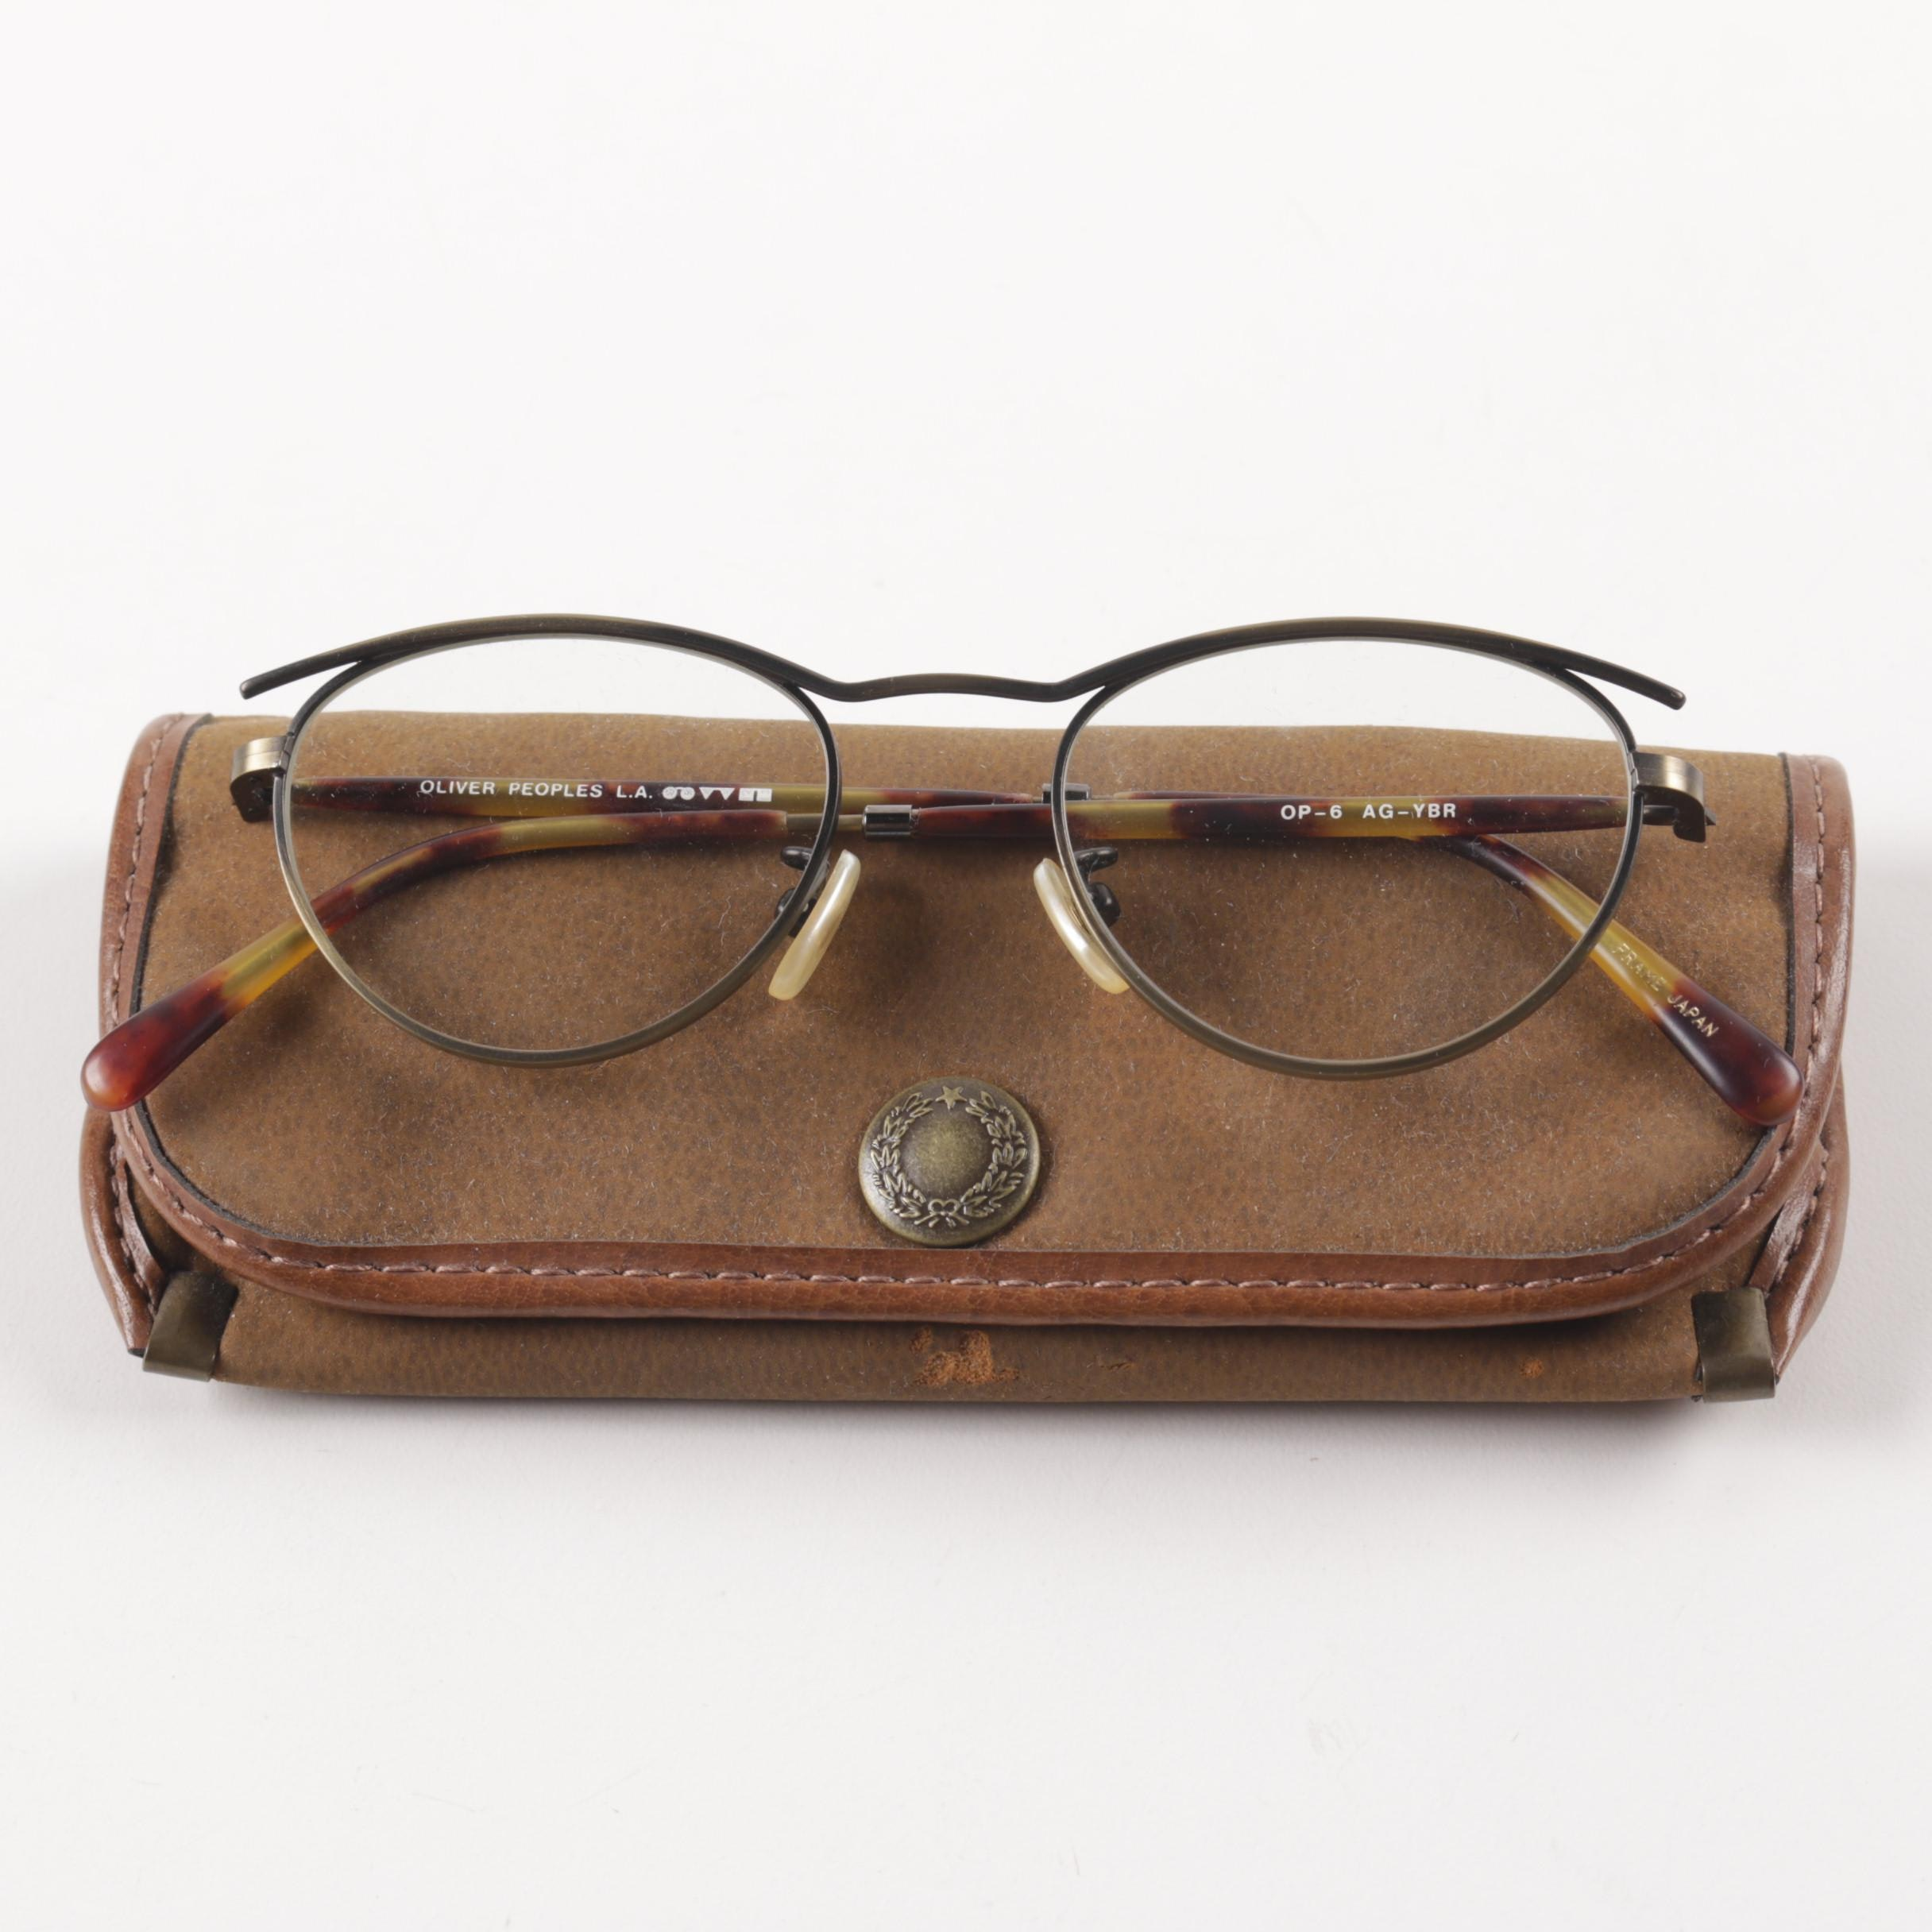 Oliver Peoples OP-6 AC-YBR Eyeglasses with Leather Case